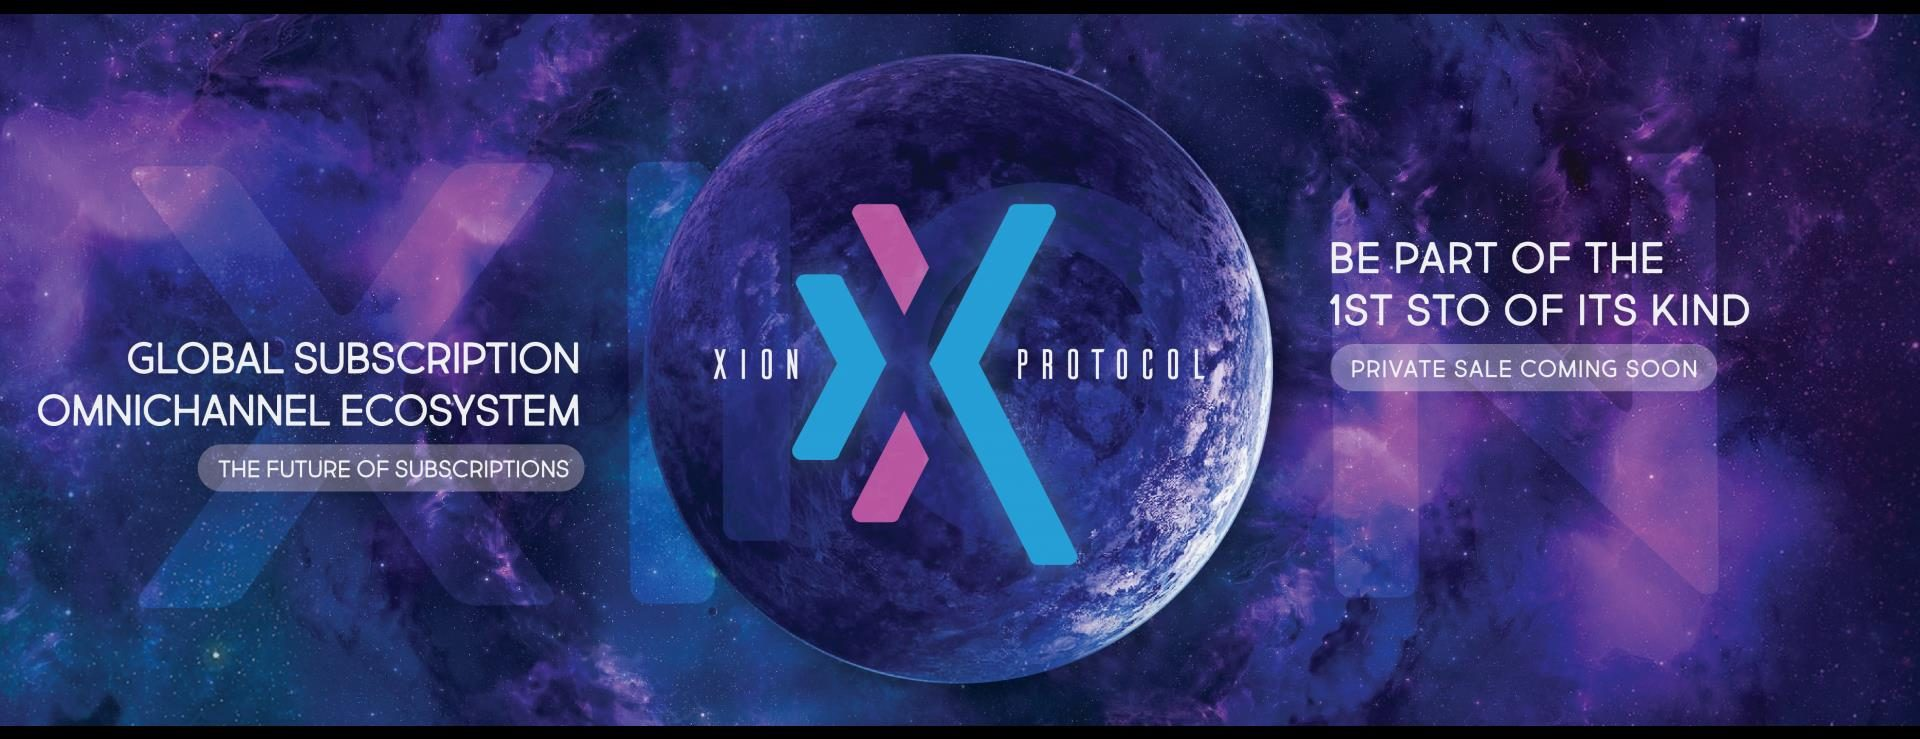 Xion Protocol Launches Own End-to-End Subscription Service